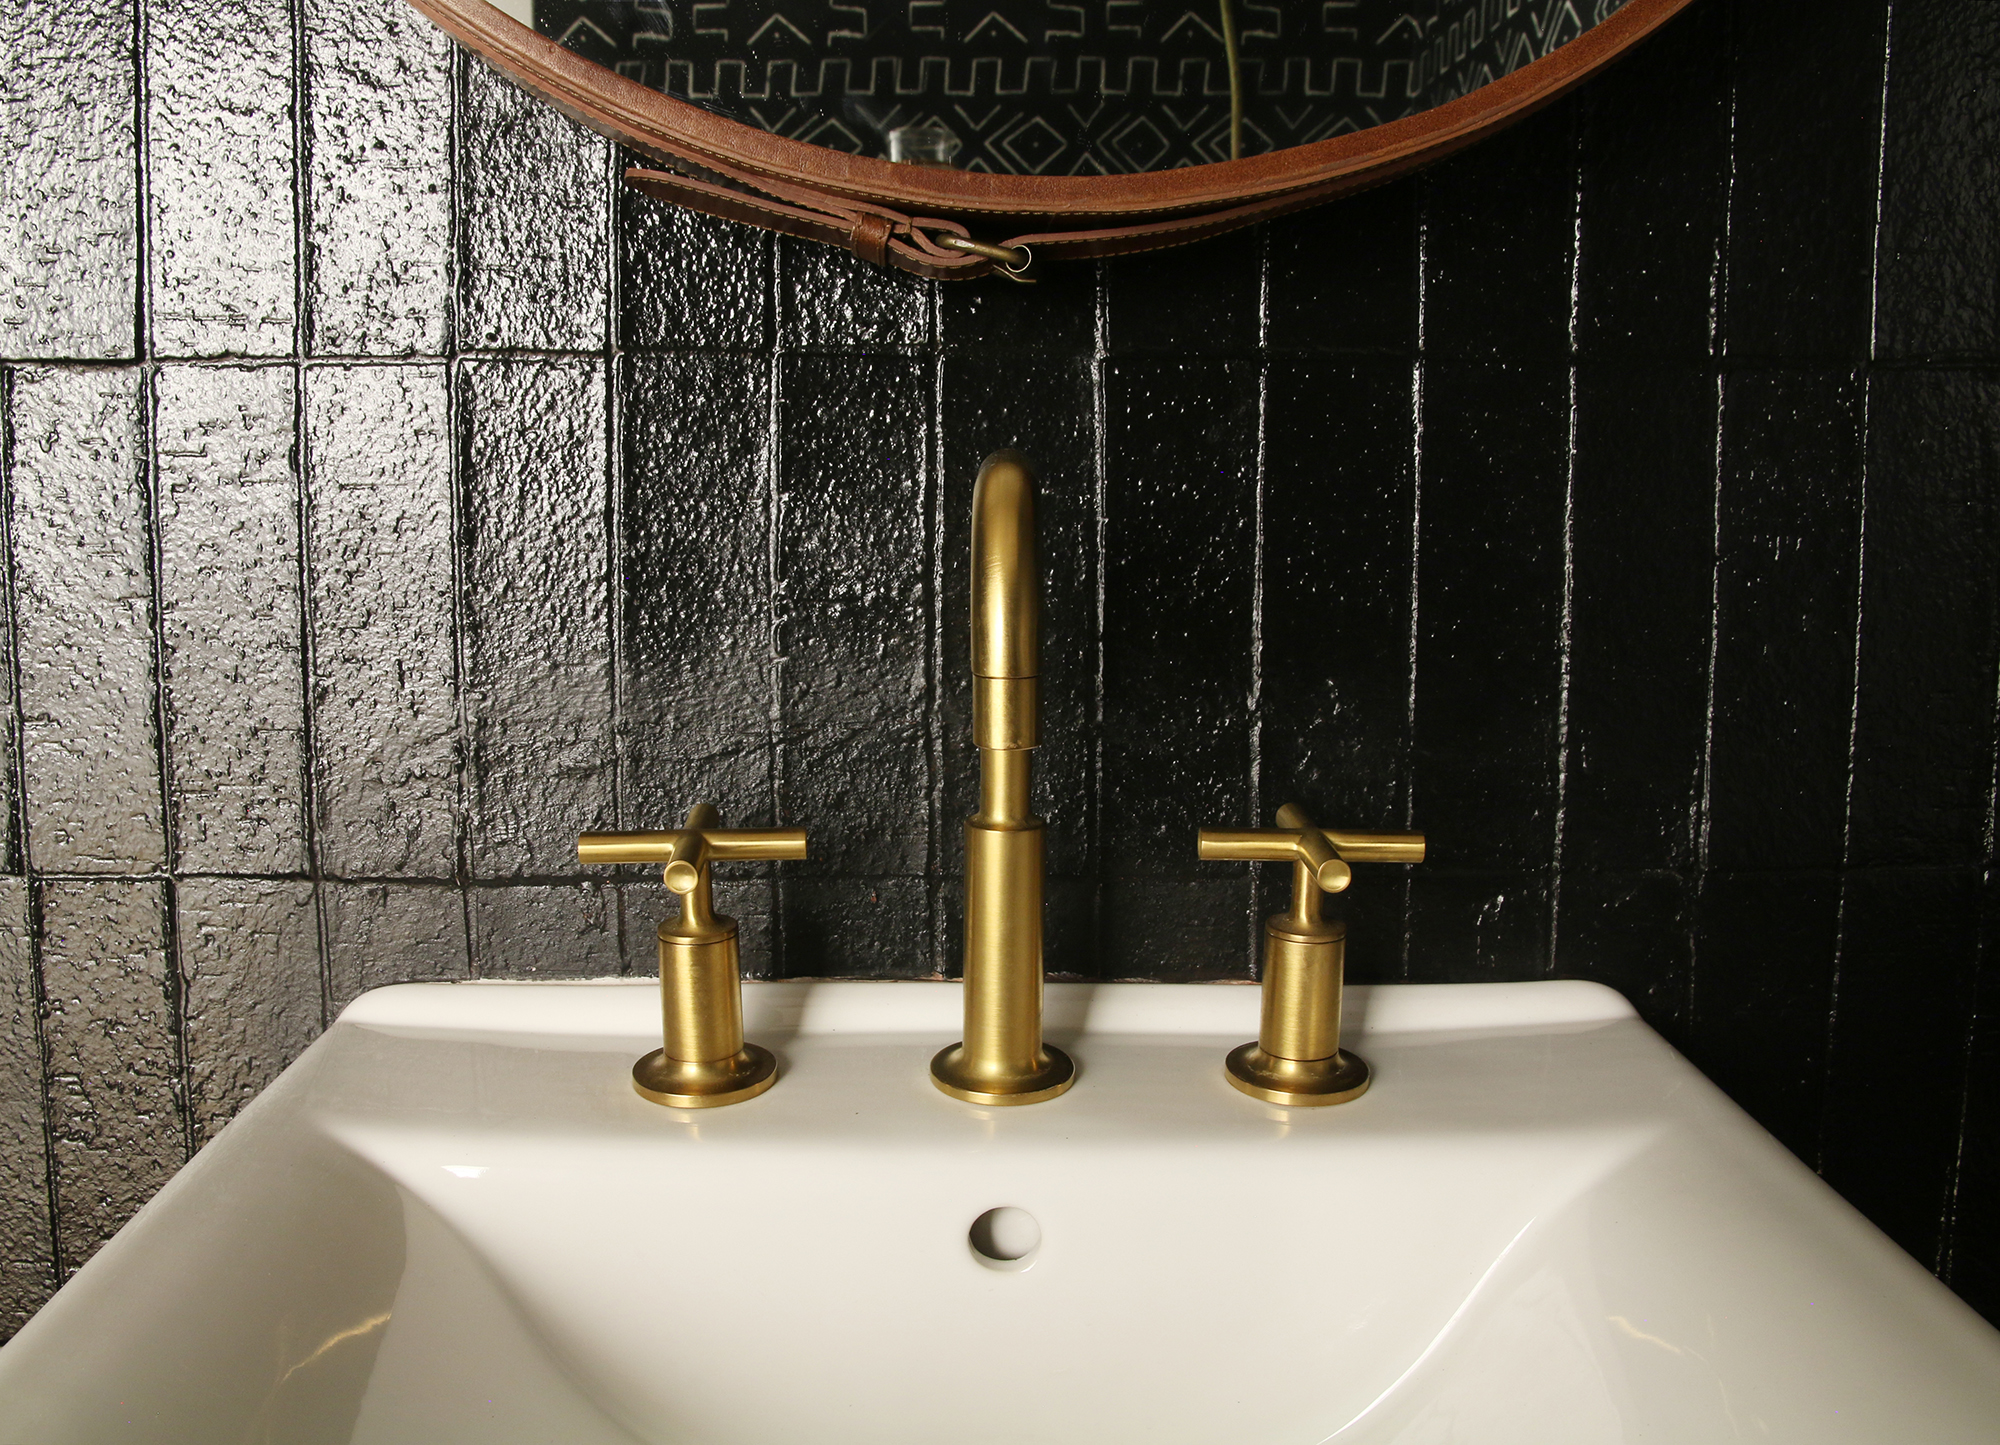 Purist faucet   Soho sink   A gold faucet finish adds richness and understated glamour to a glossy black wall.